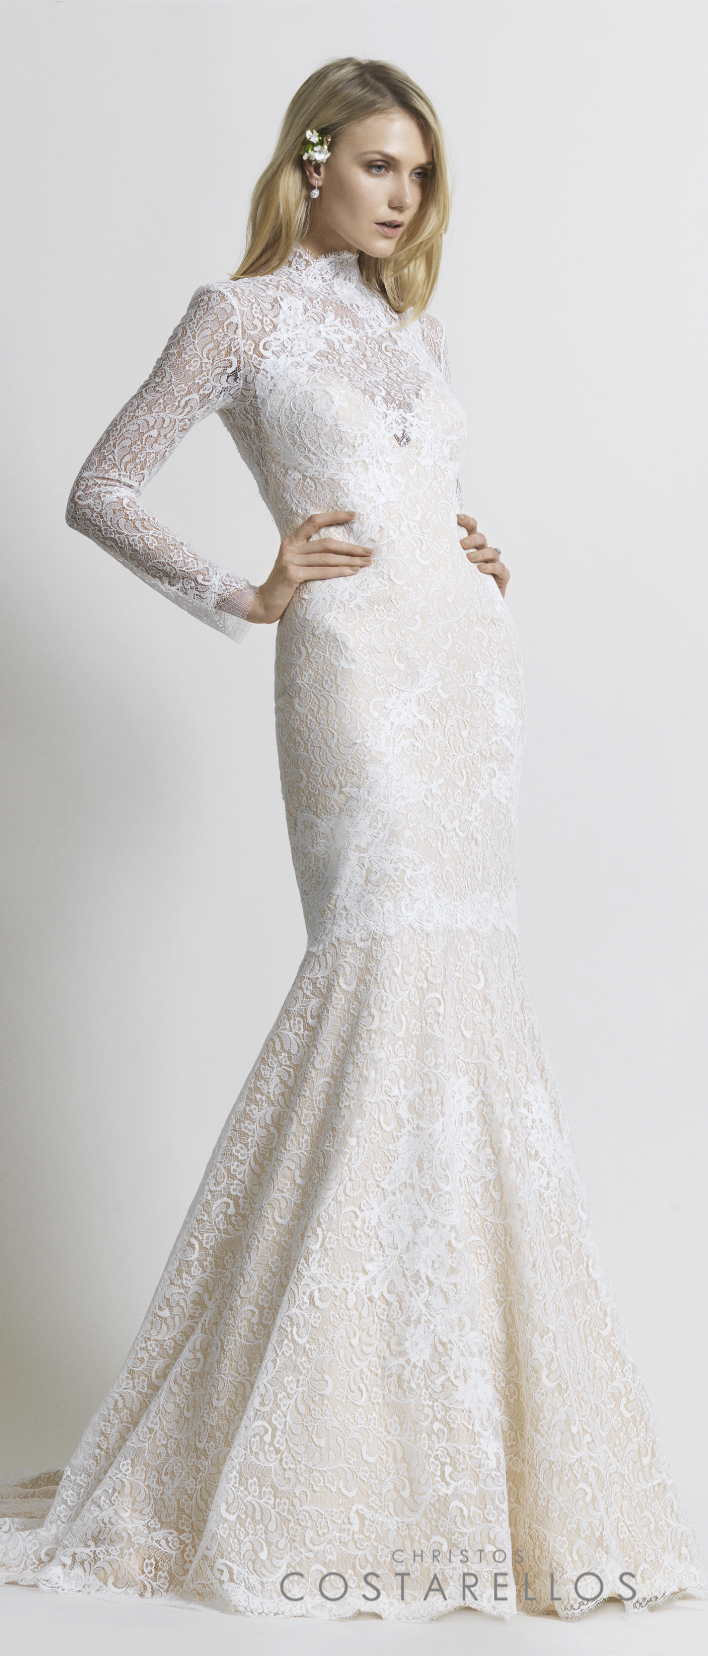 Christos Costarellos Bridal 2014 collection. A glamorous mermaid wedding dress with silk organza and beauvillain lace. Code: BR14 33. For stockists please visit www.costarellos.com #christoscostarellos #costarellos #costarellosbride #bridaldress #bridalgown #weddingdress #weddinggown #lace #bridetobe #bridalmarket #bridalfashion #wedding